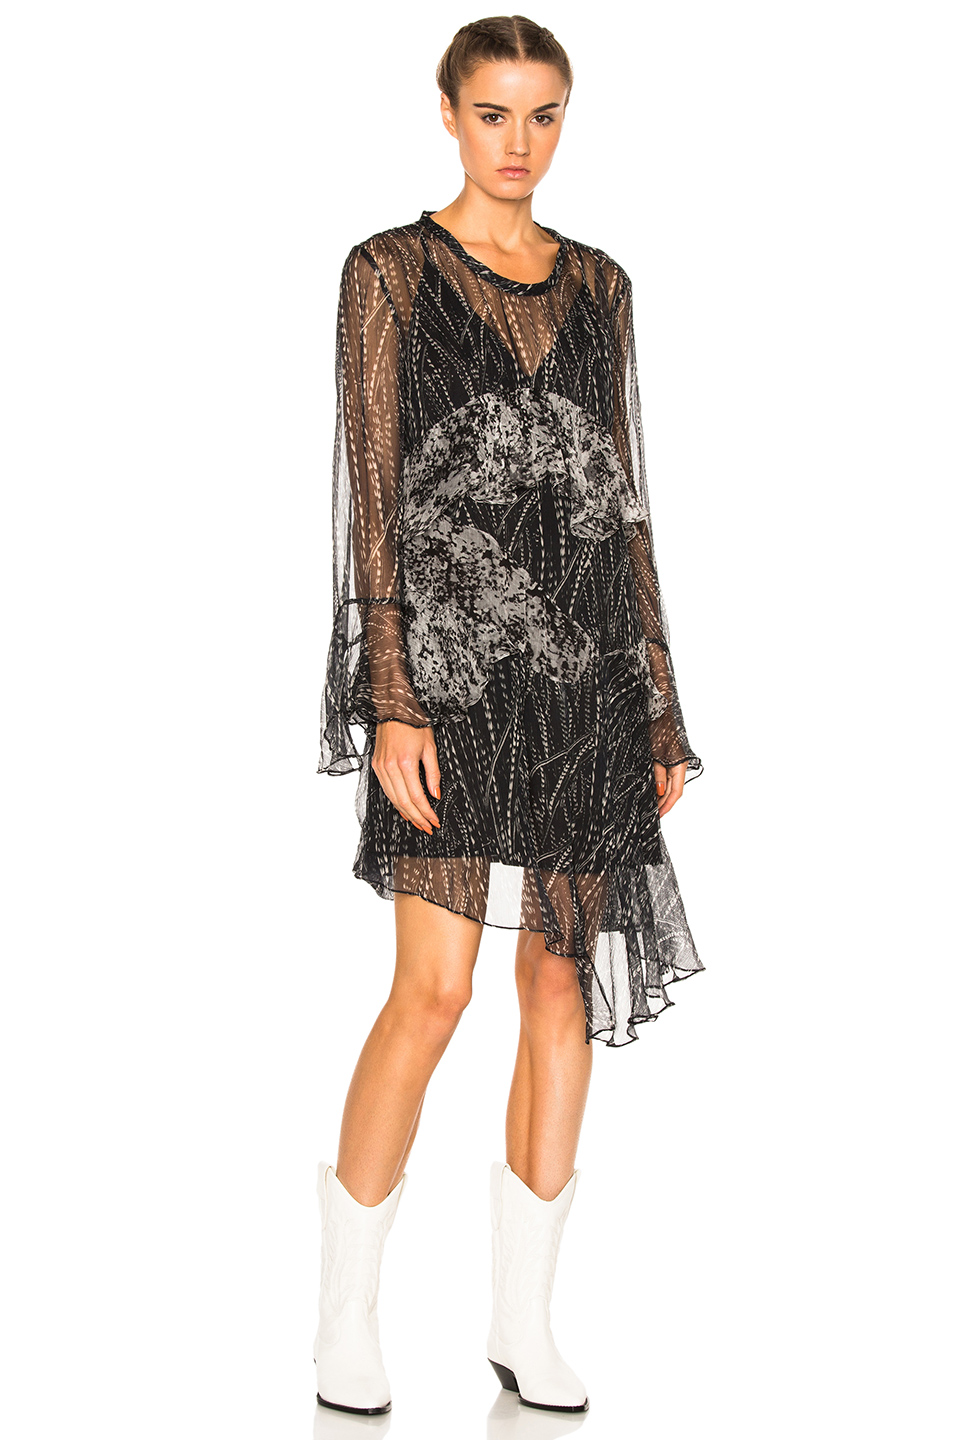 IRO Gypsy Dress in Abstract,Black,White